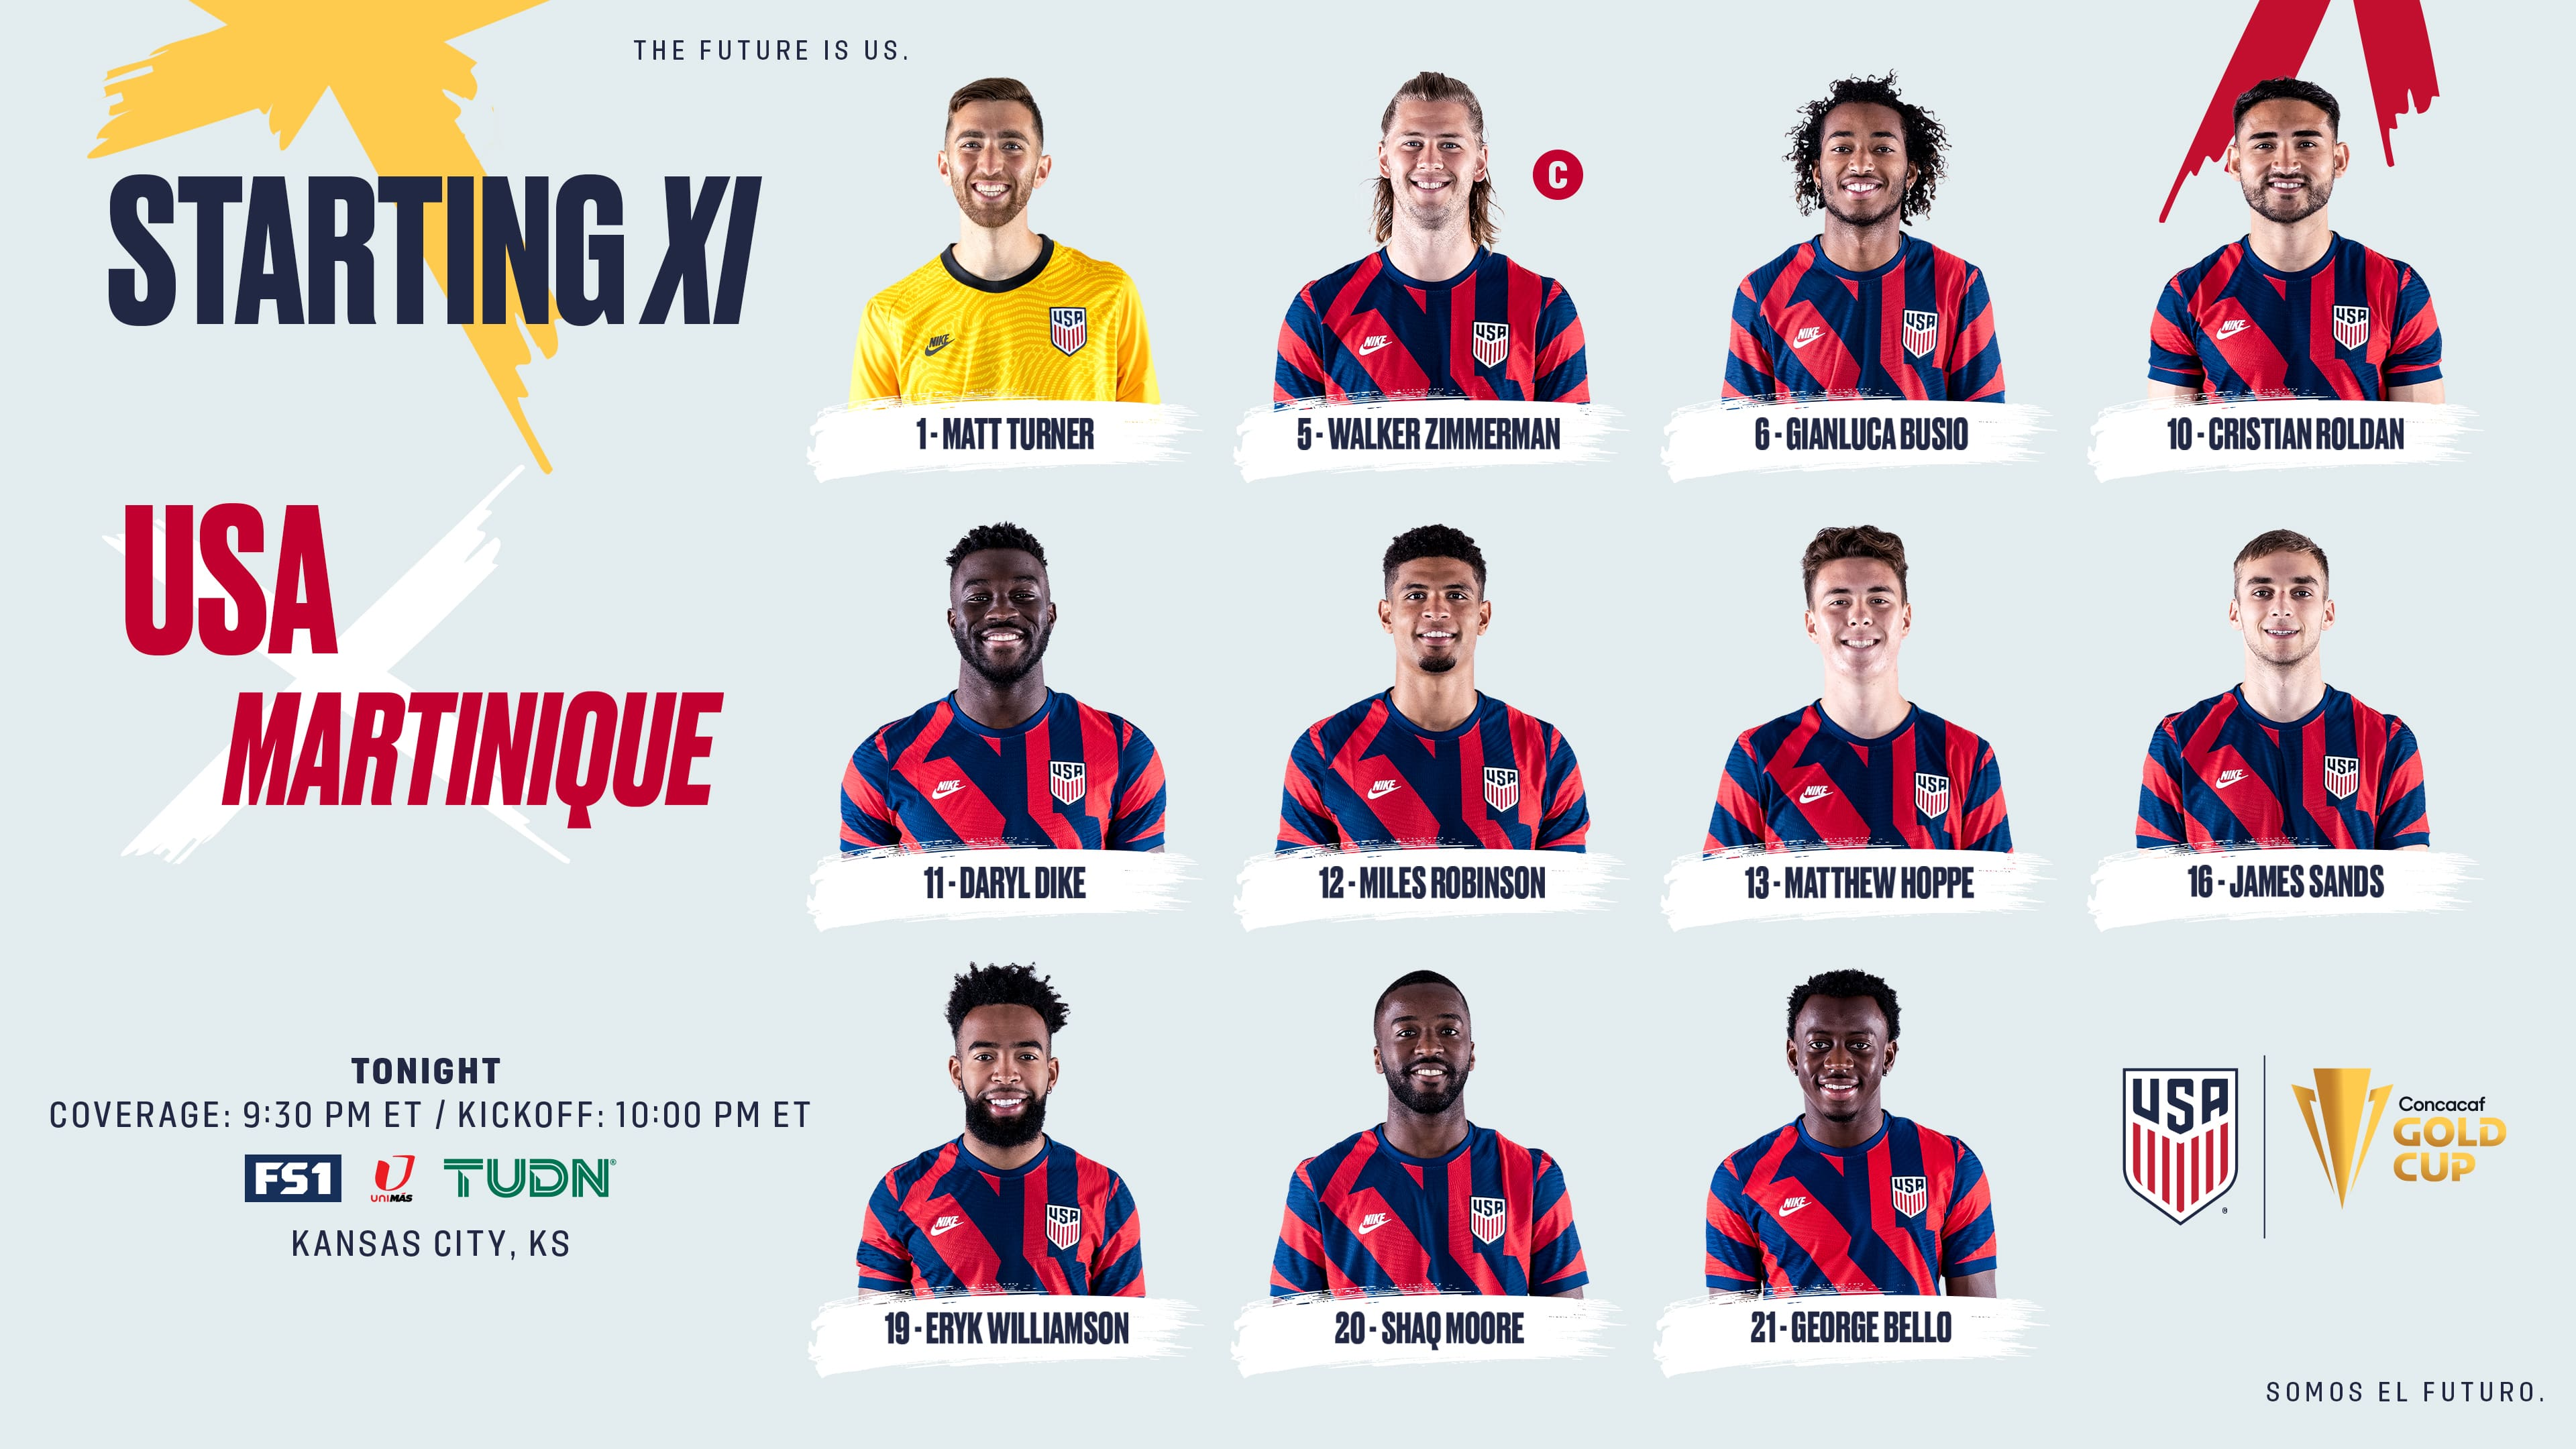 2021 Concacaf Gold Cup: USA vs Martinique - Starting XI, Lineup Notes, TV Channels & Start Time